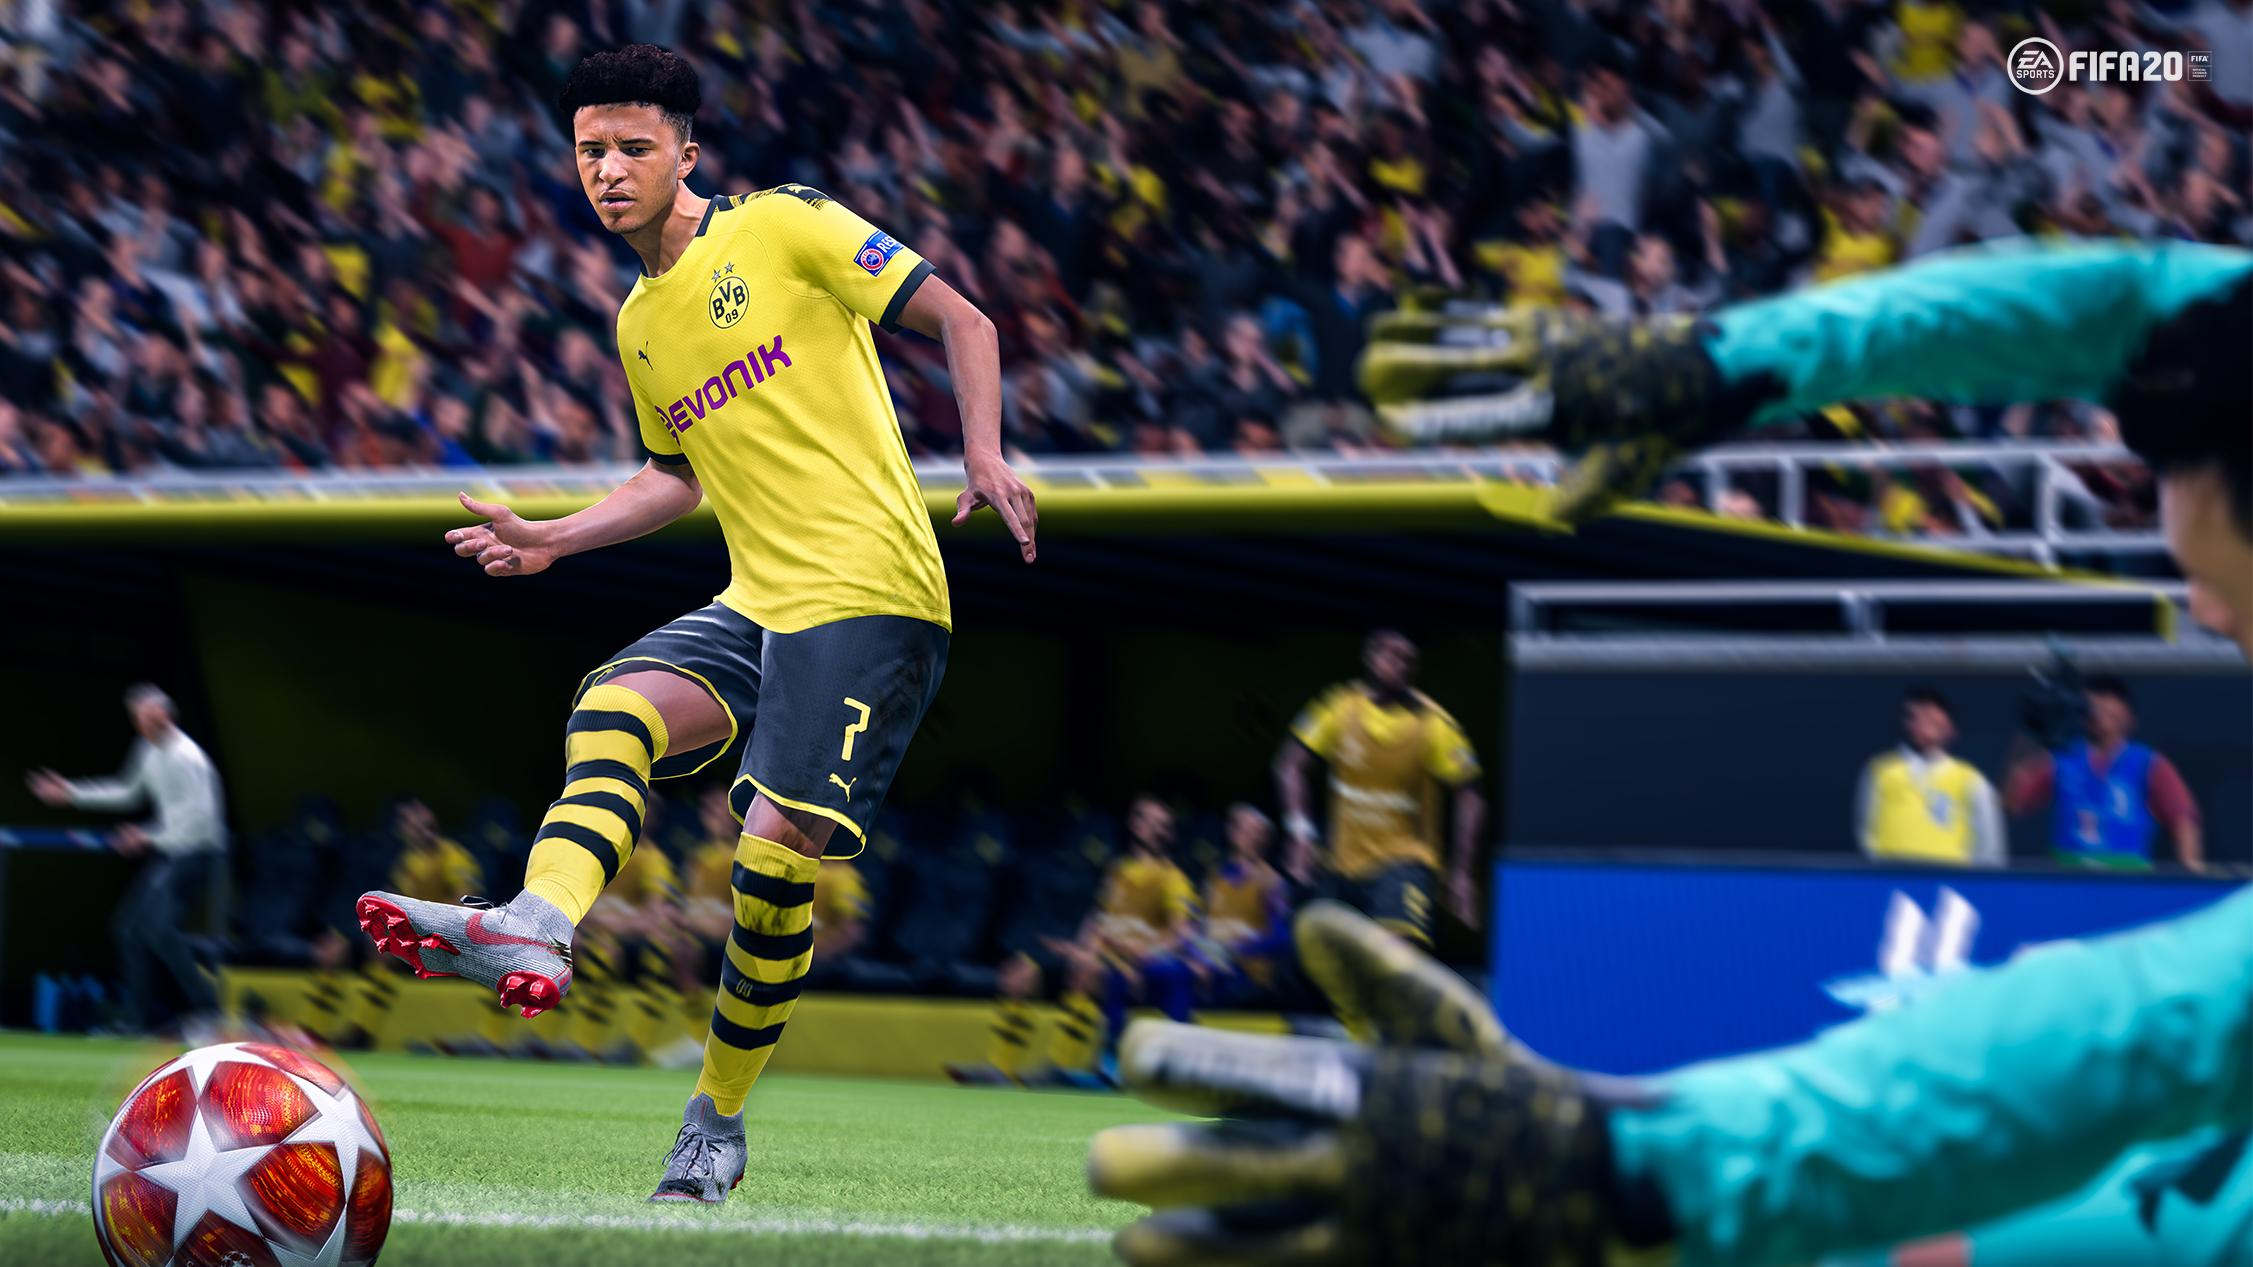 FIFA 20 Gameplay FIFA 20 Demo Now Available To Download For FREE